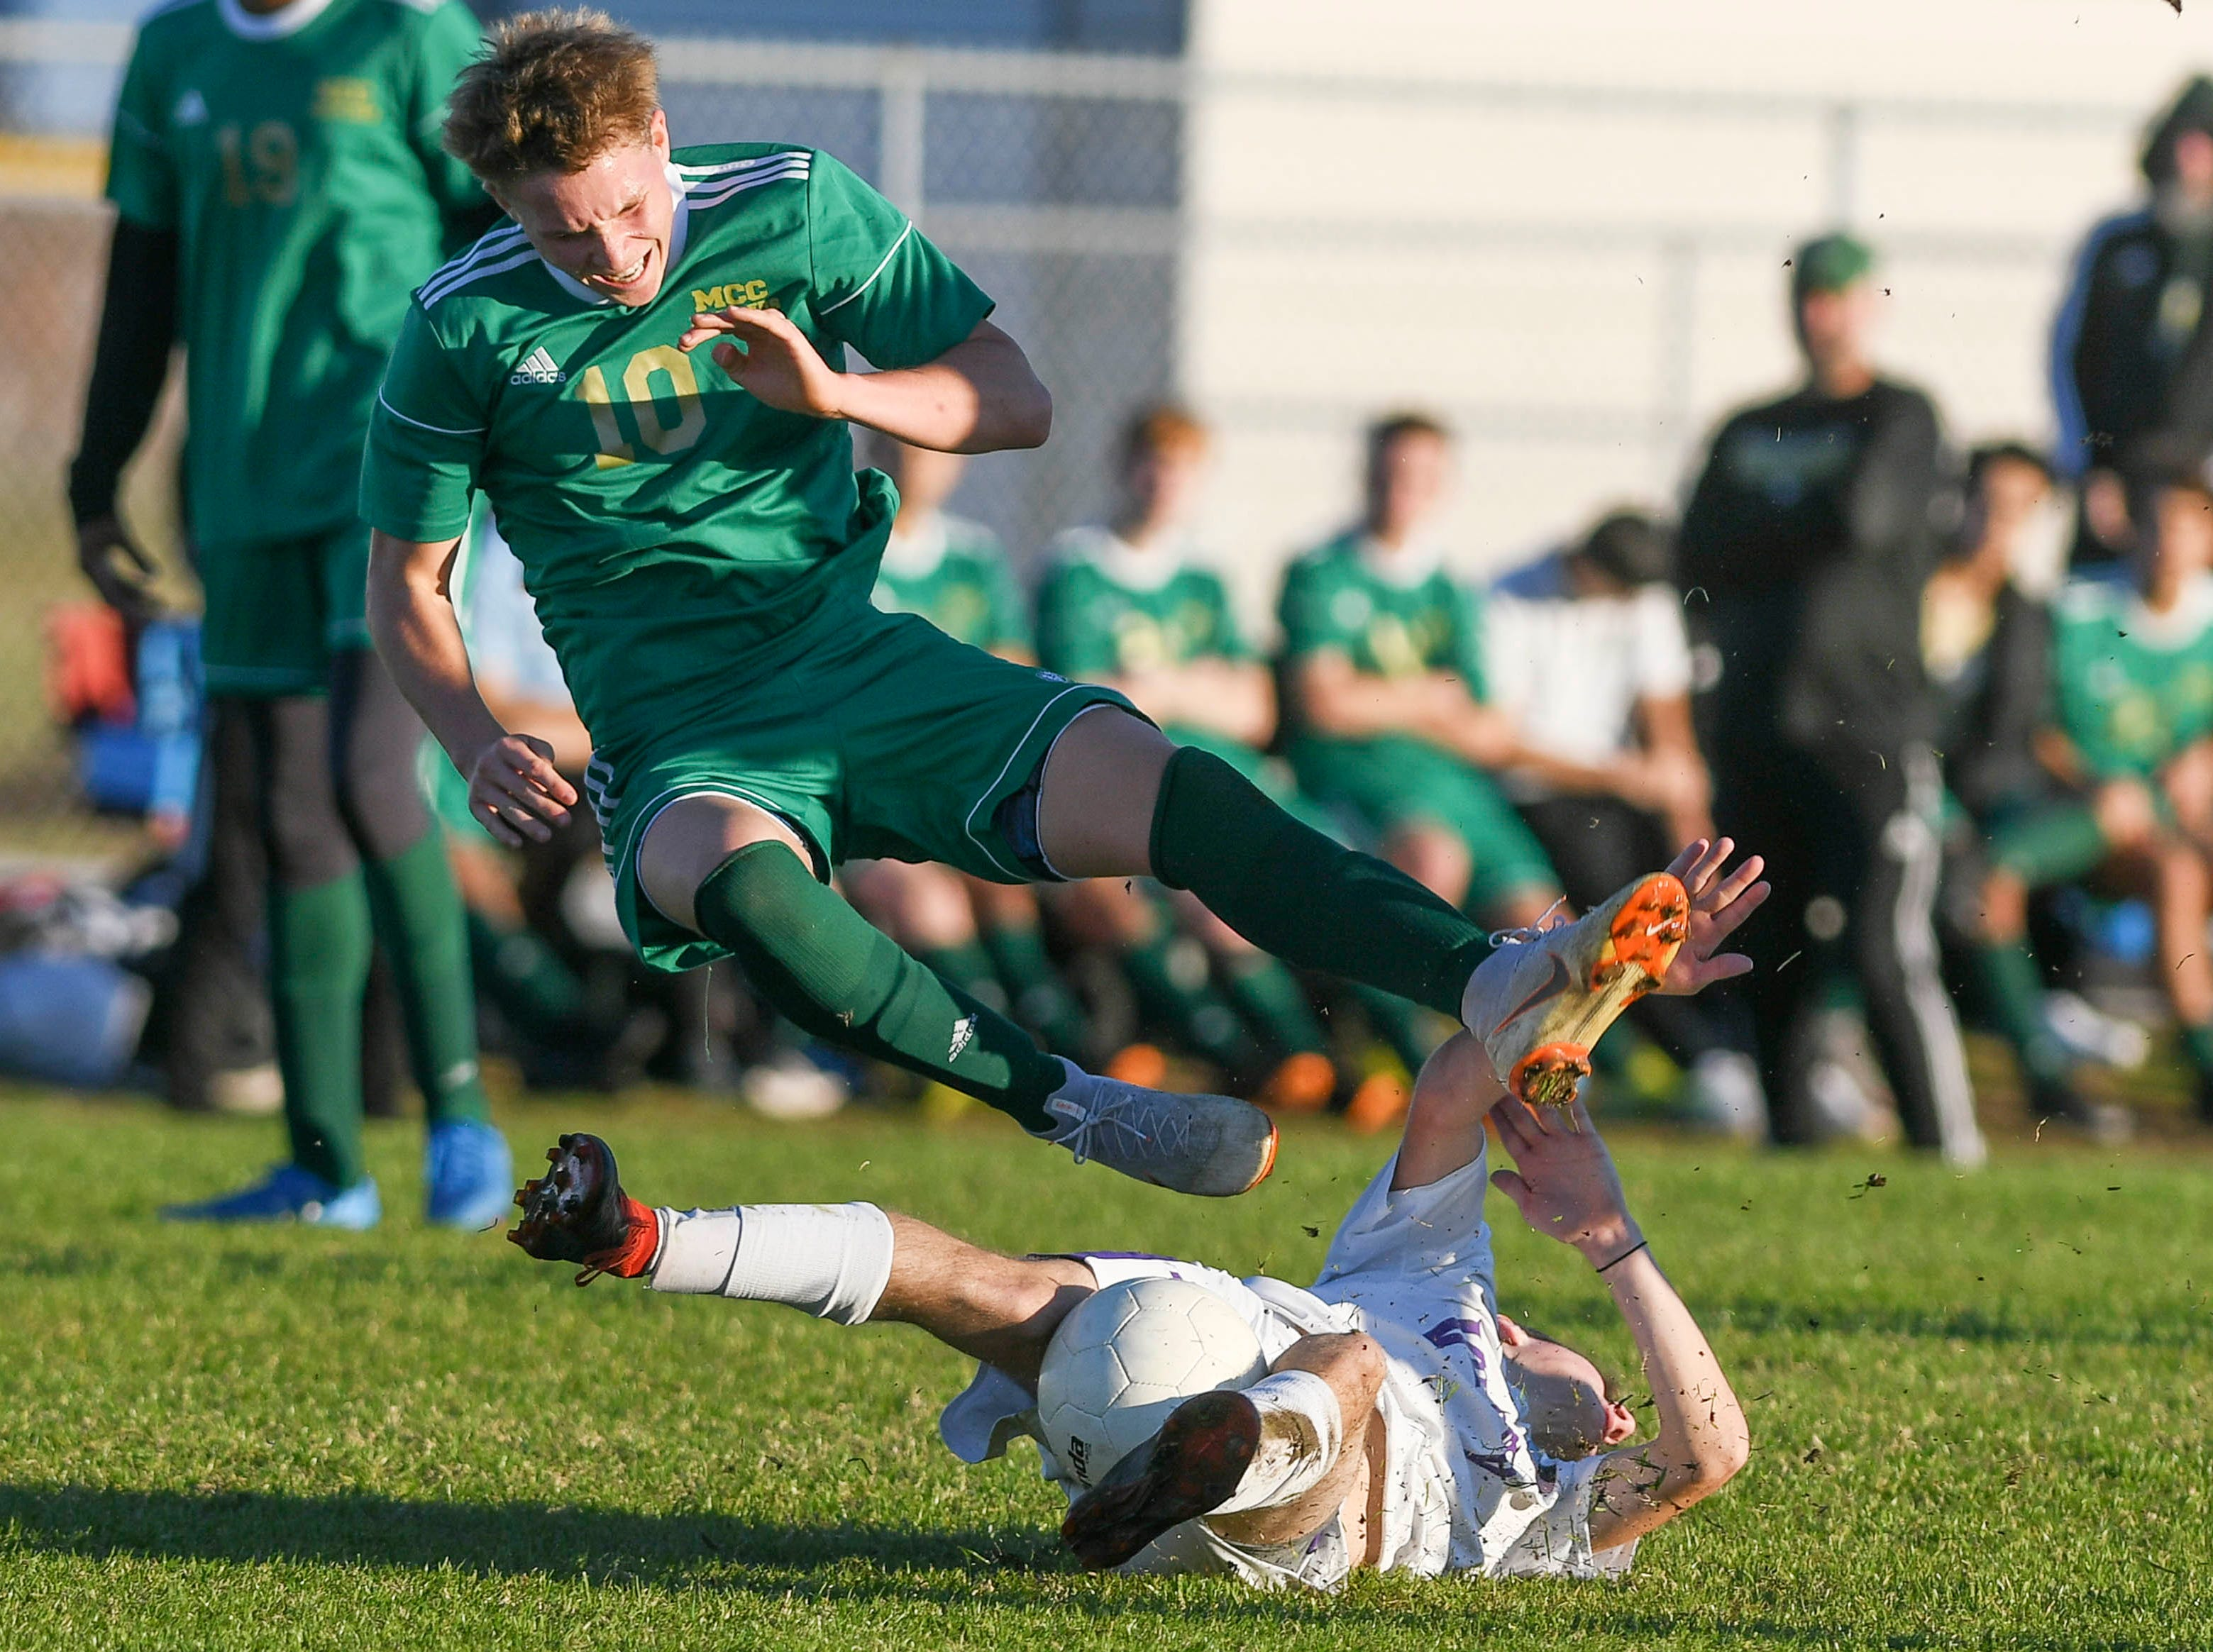 Mark Alcorn of Melbourne Central Catholic is upended by Christian Powell of Space Coast during Tuesday's District 8, Class 2A semifinal at Cocoa Beach High.